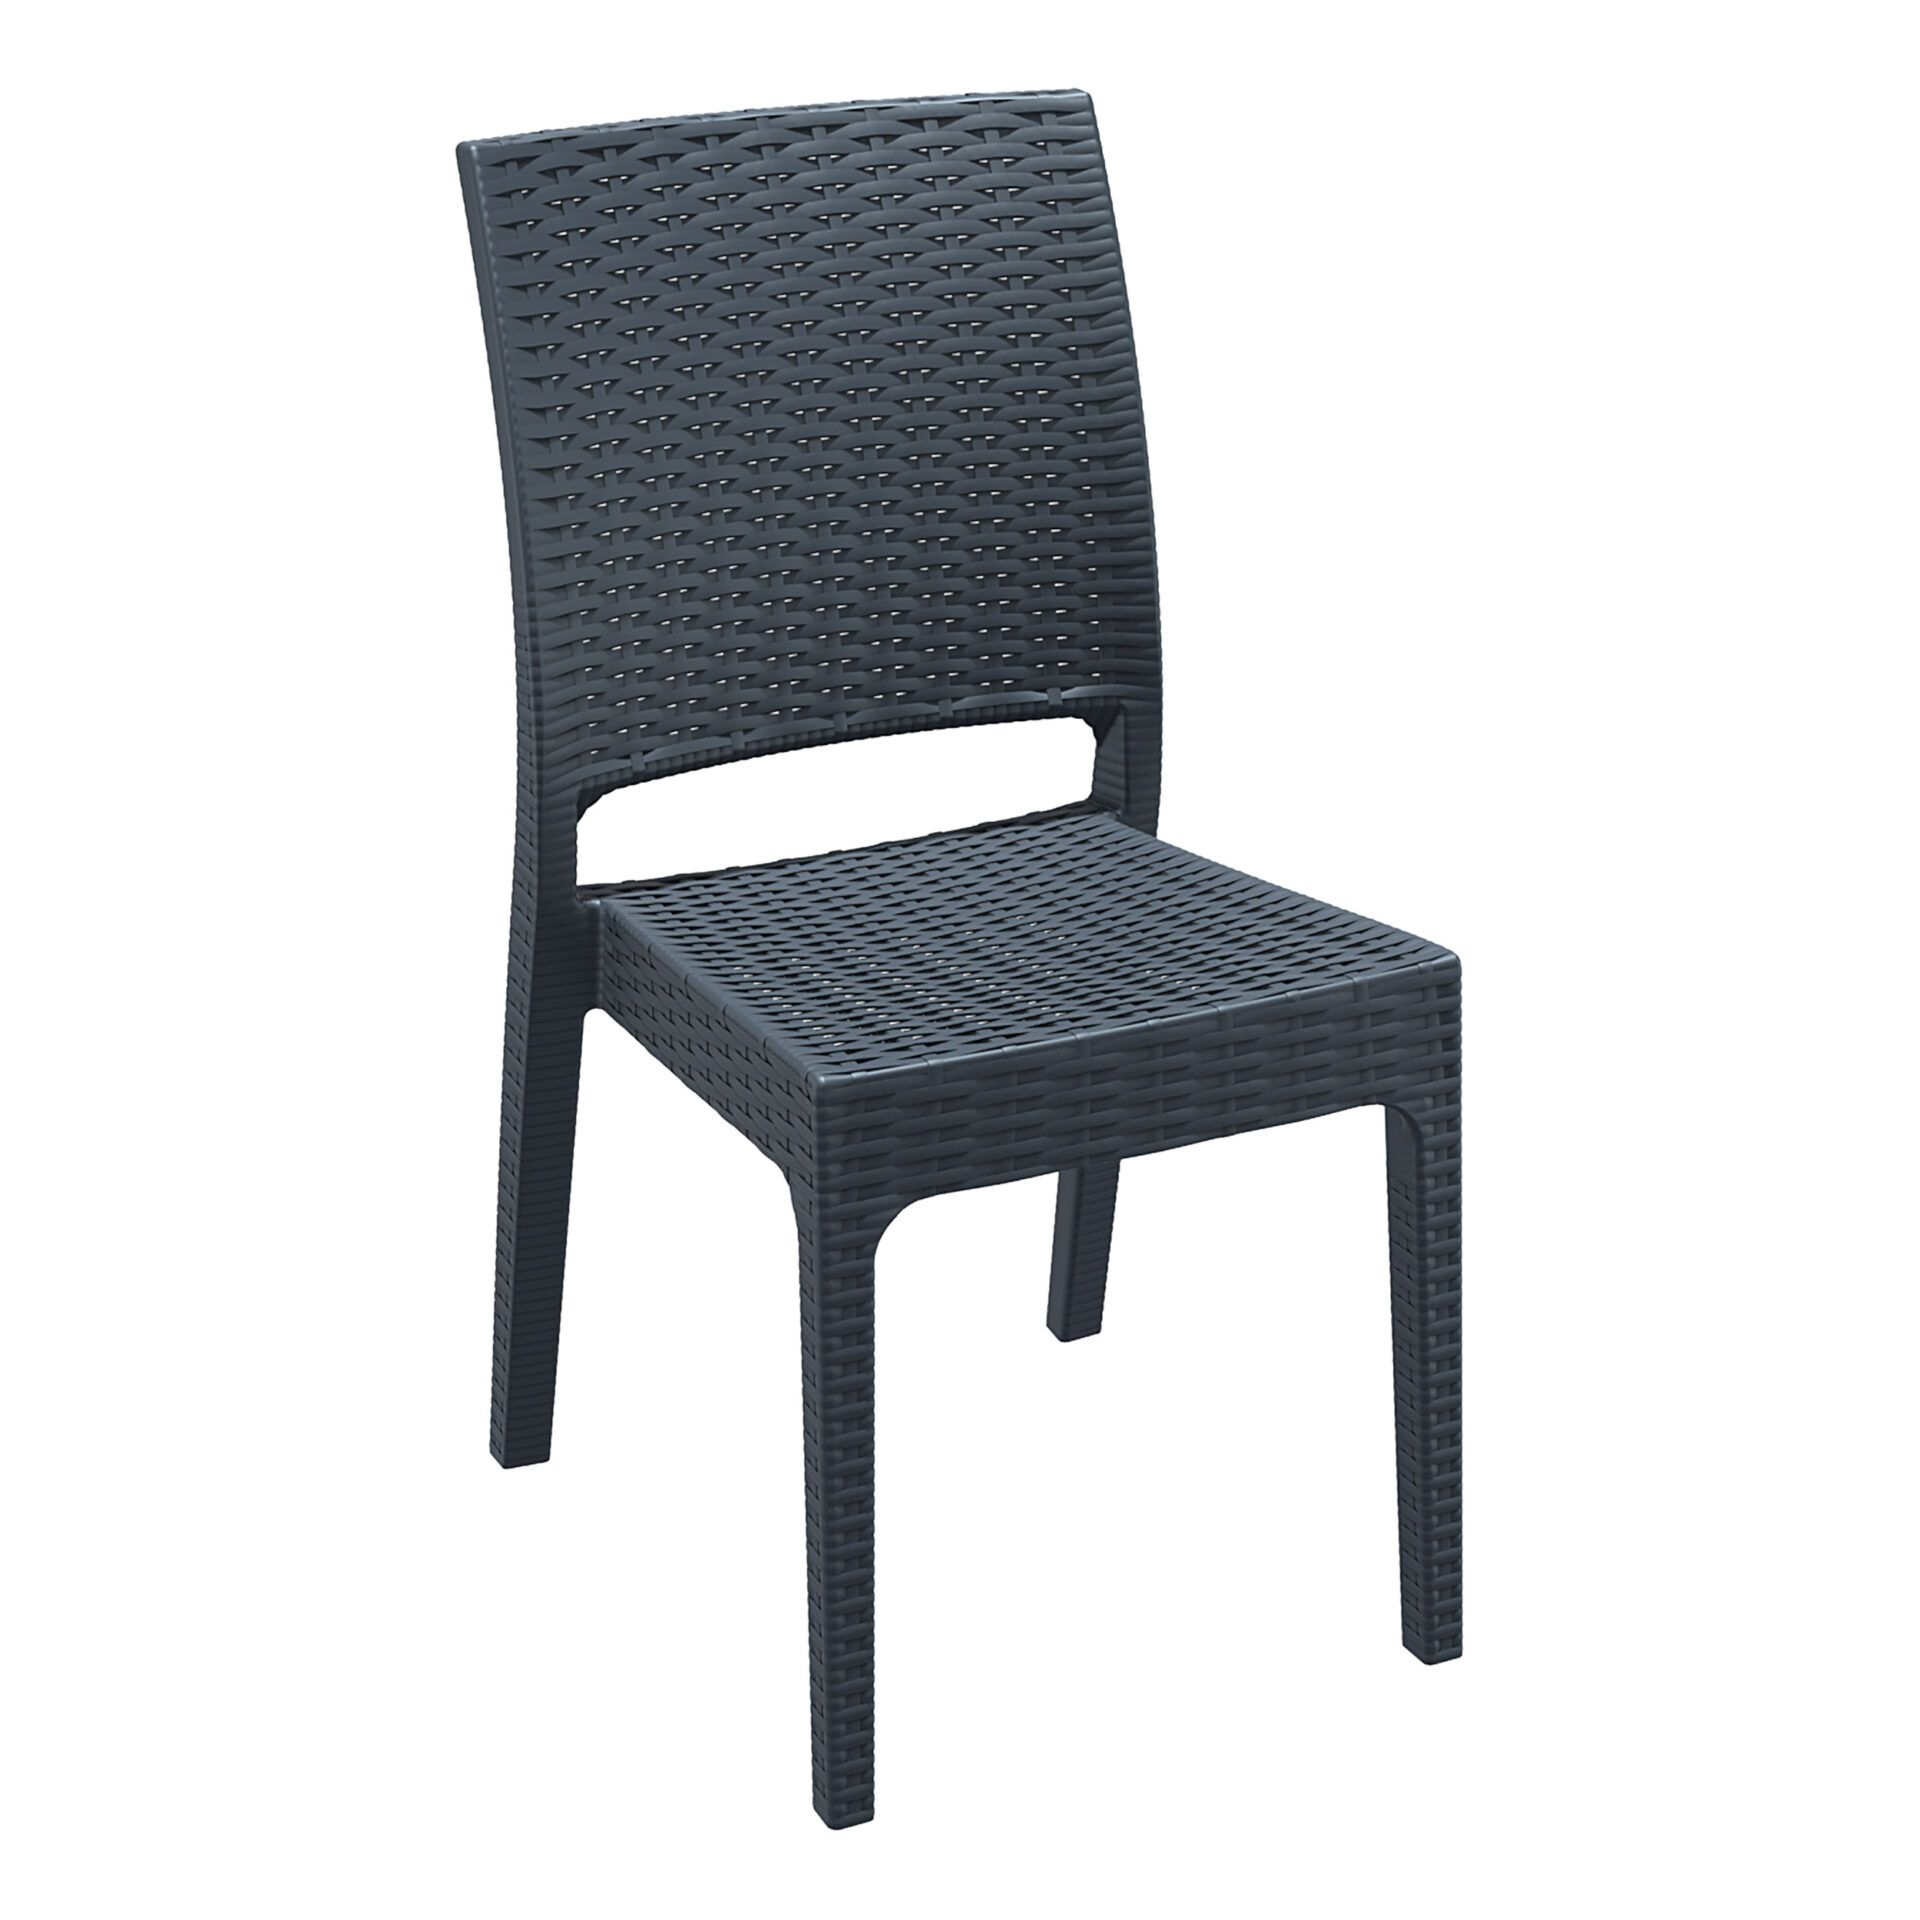 resin rattan dining florida chair darkgrey front side